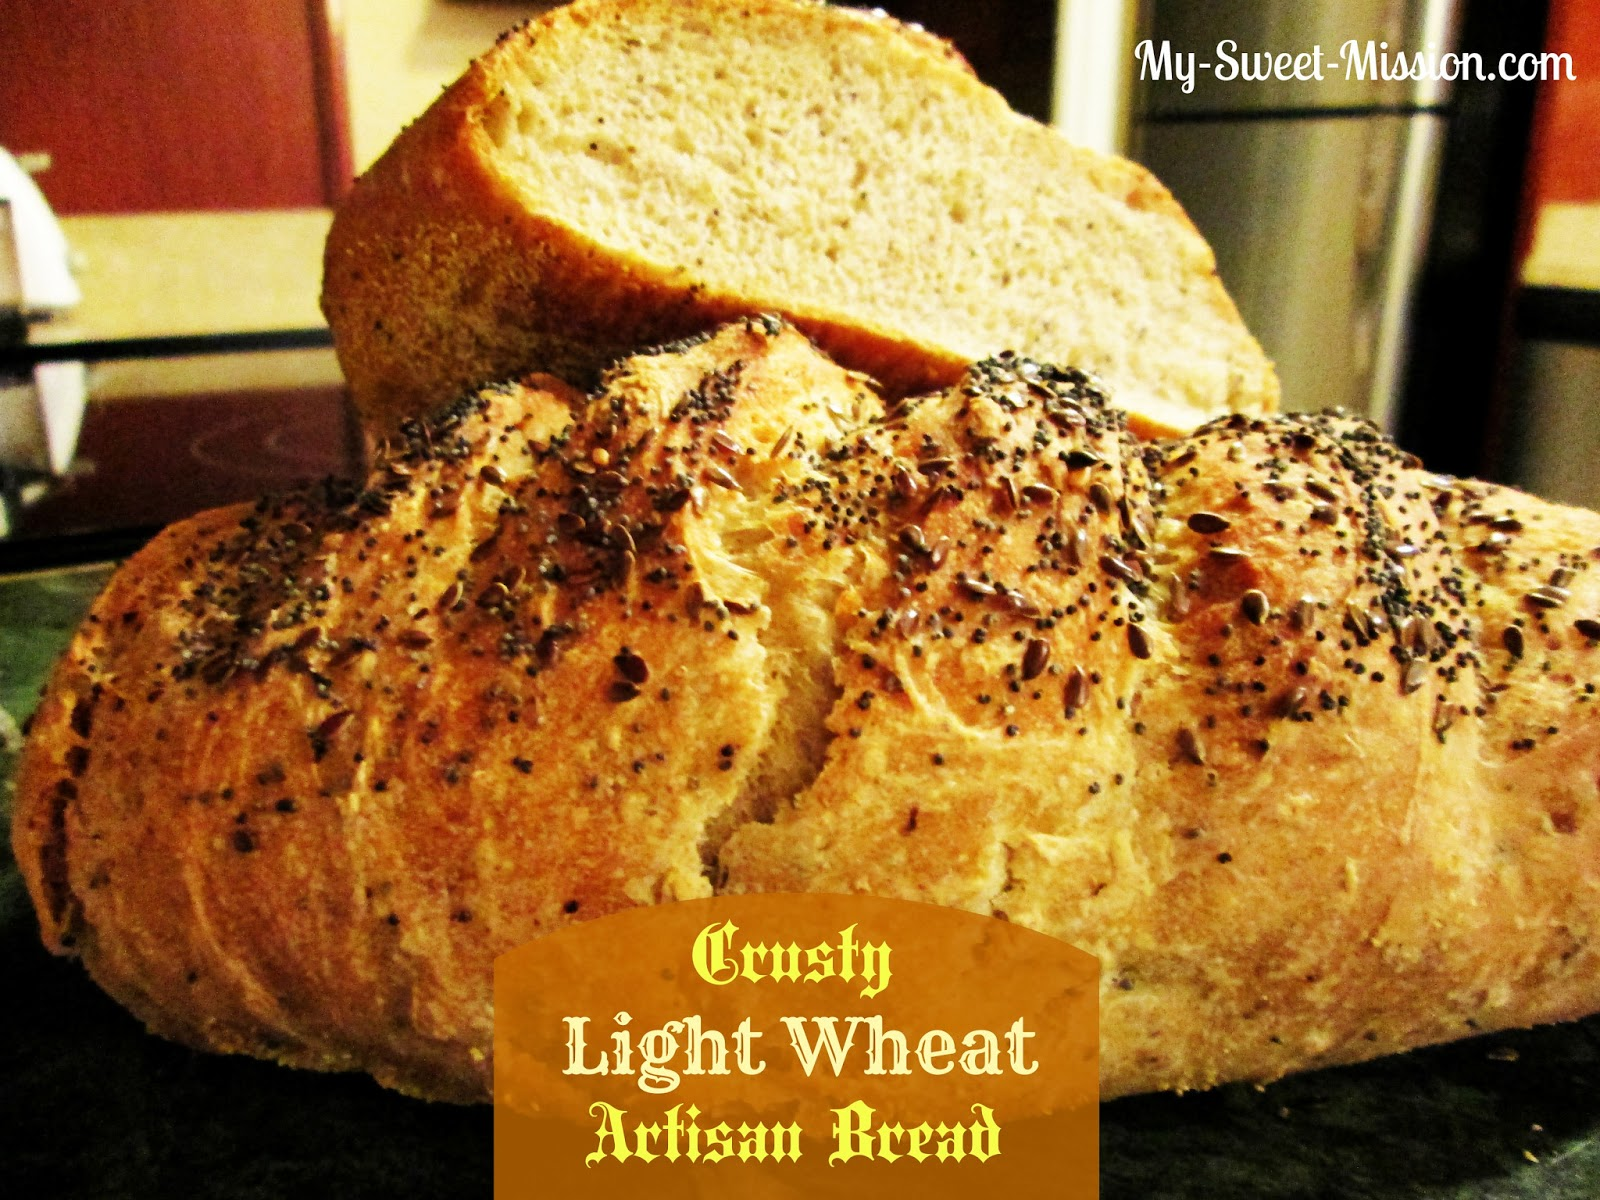 ... sprinkling of seeds gives this crusty artisan bread a hearty flavor